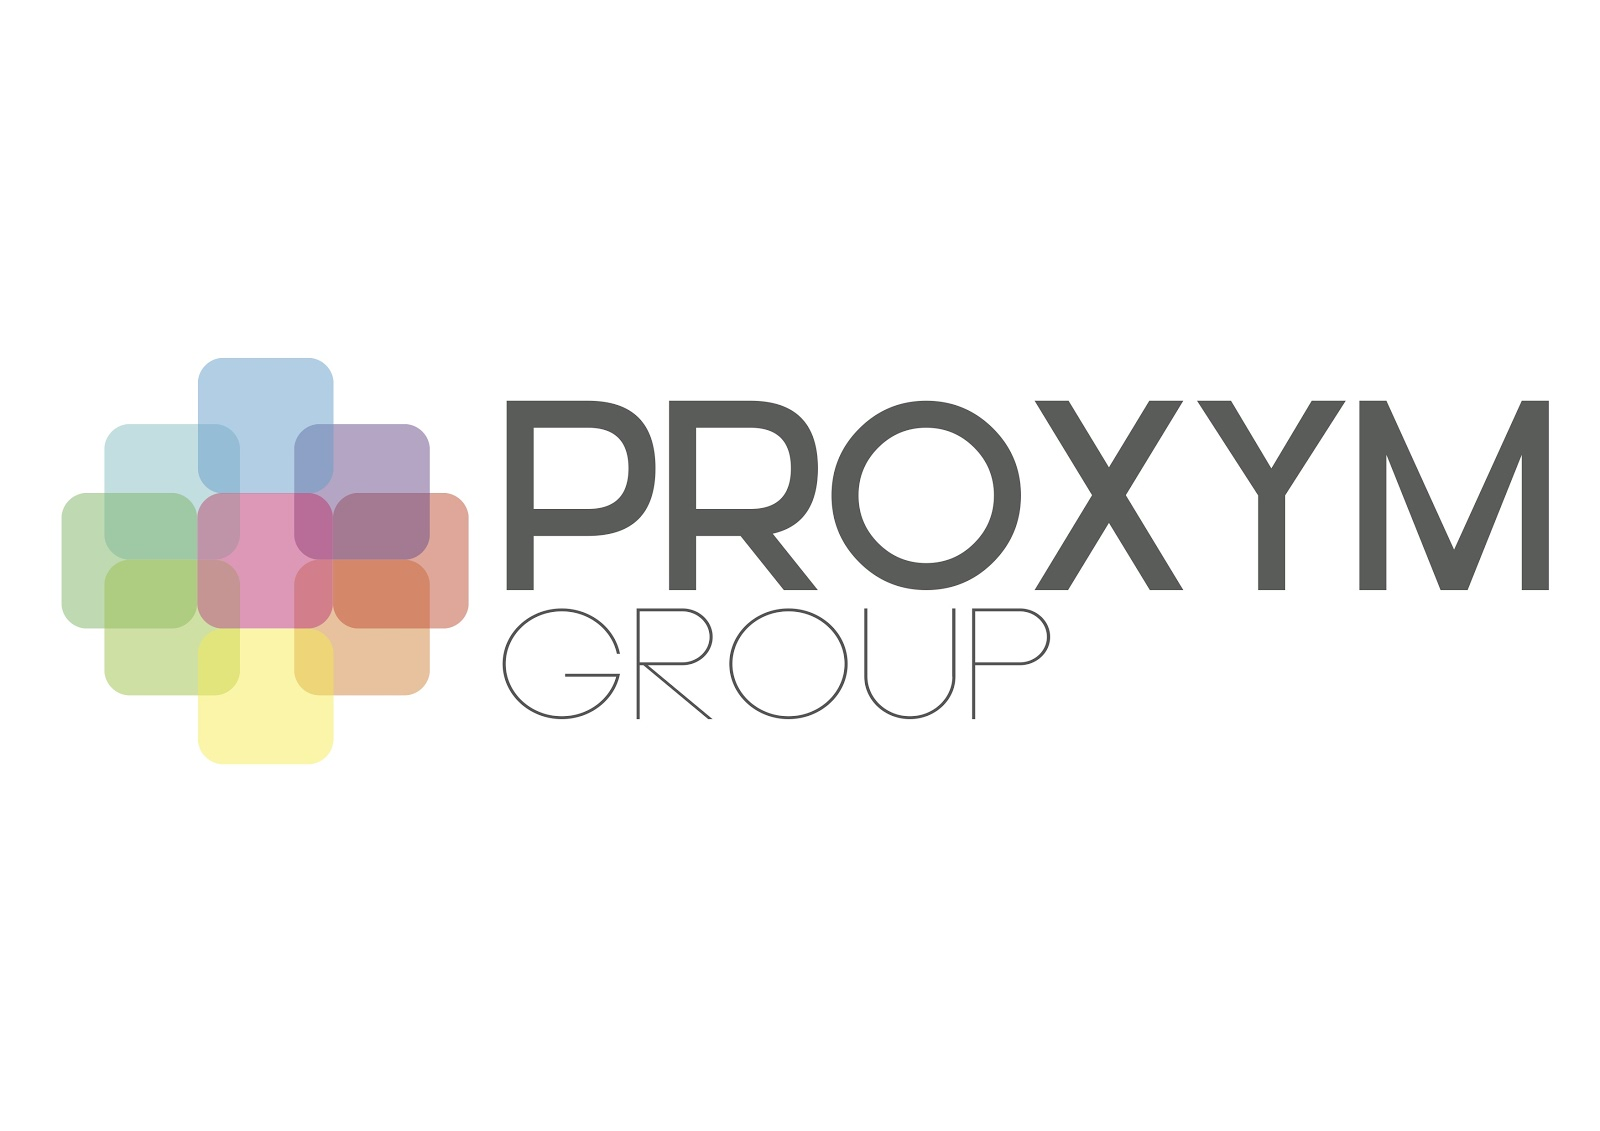 logo Proxym Group Final vectorisé.jpg